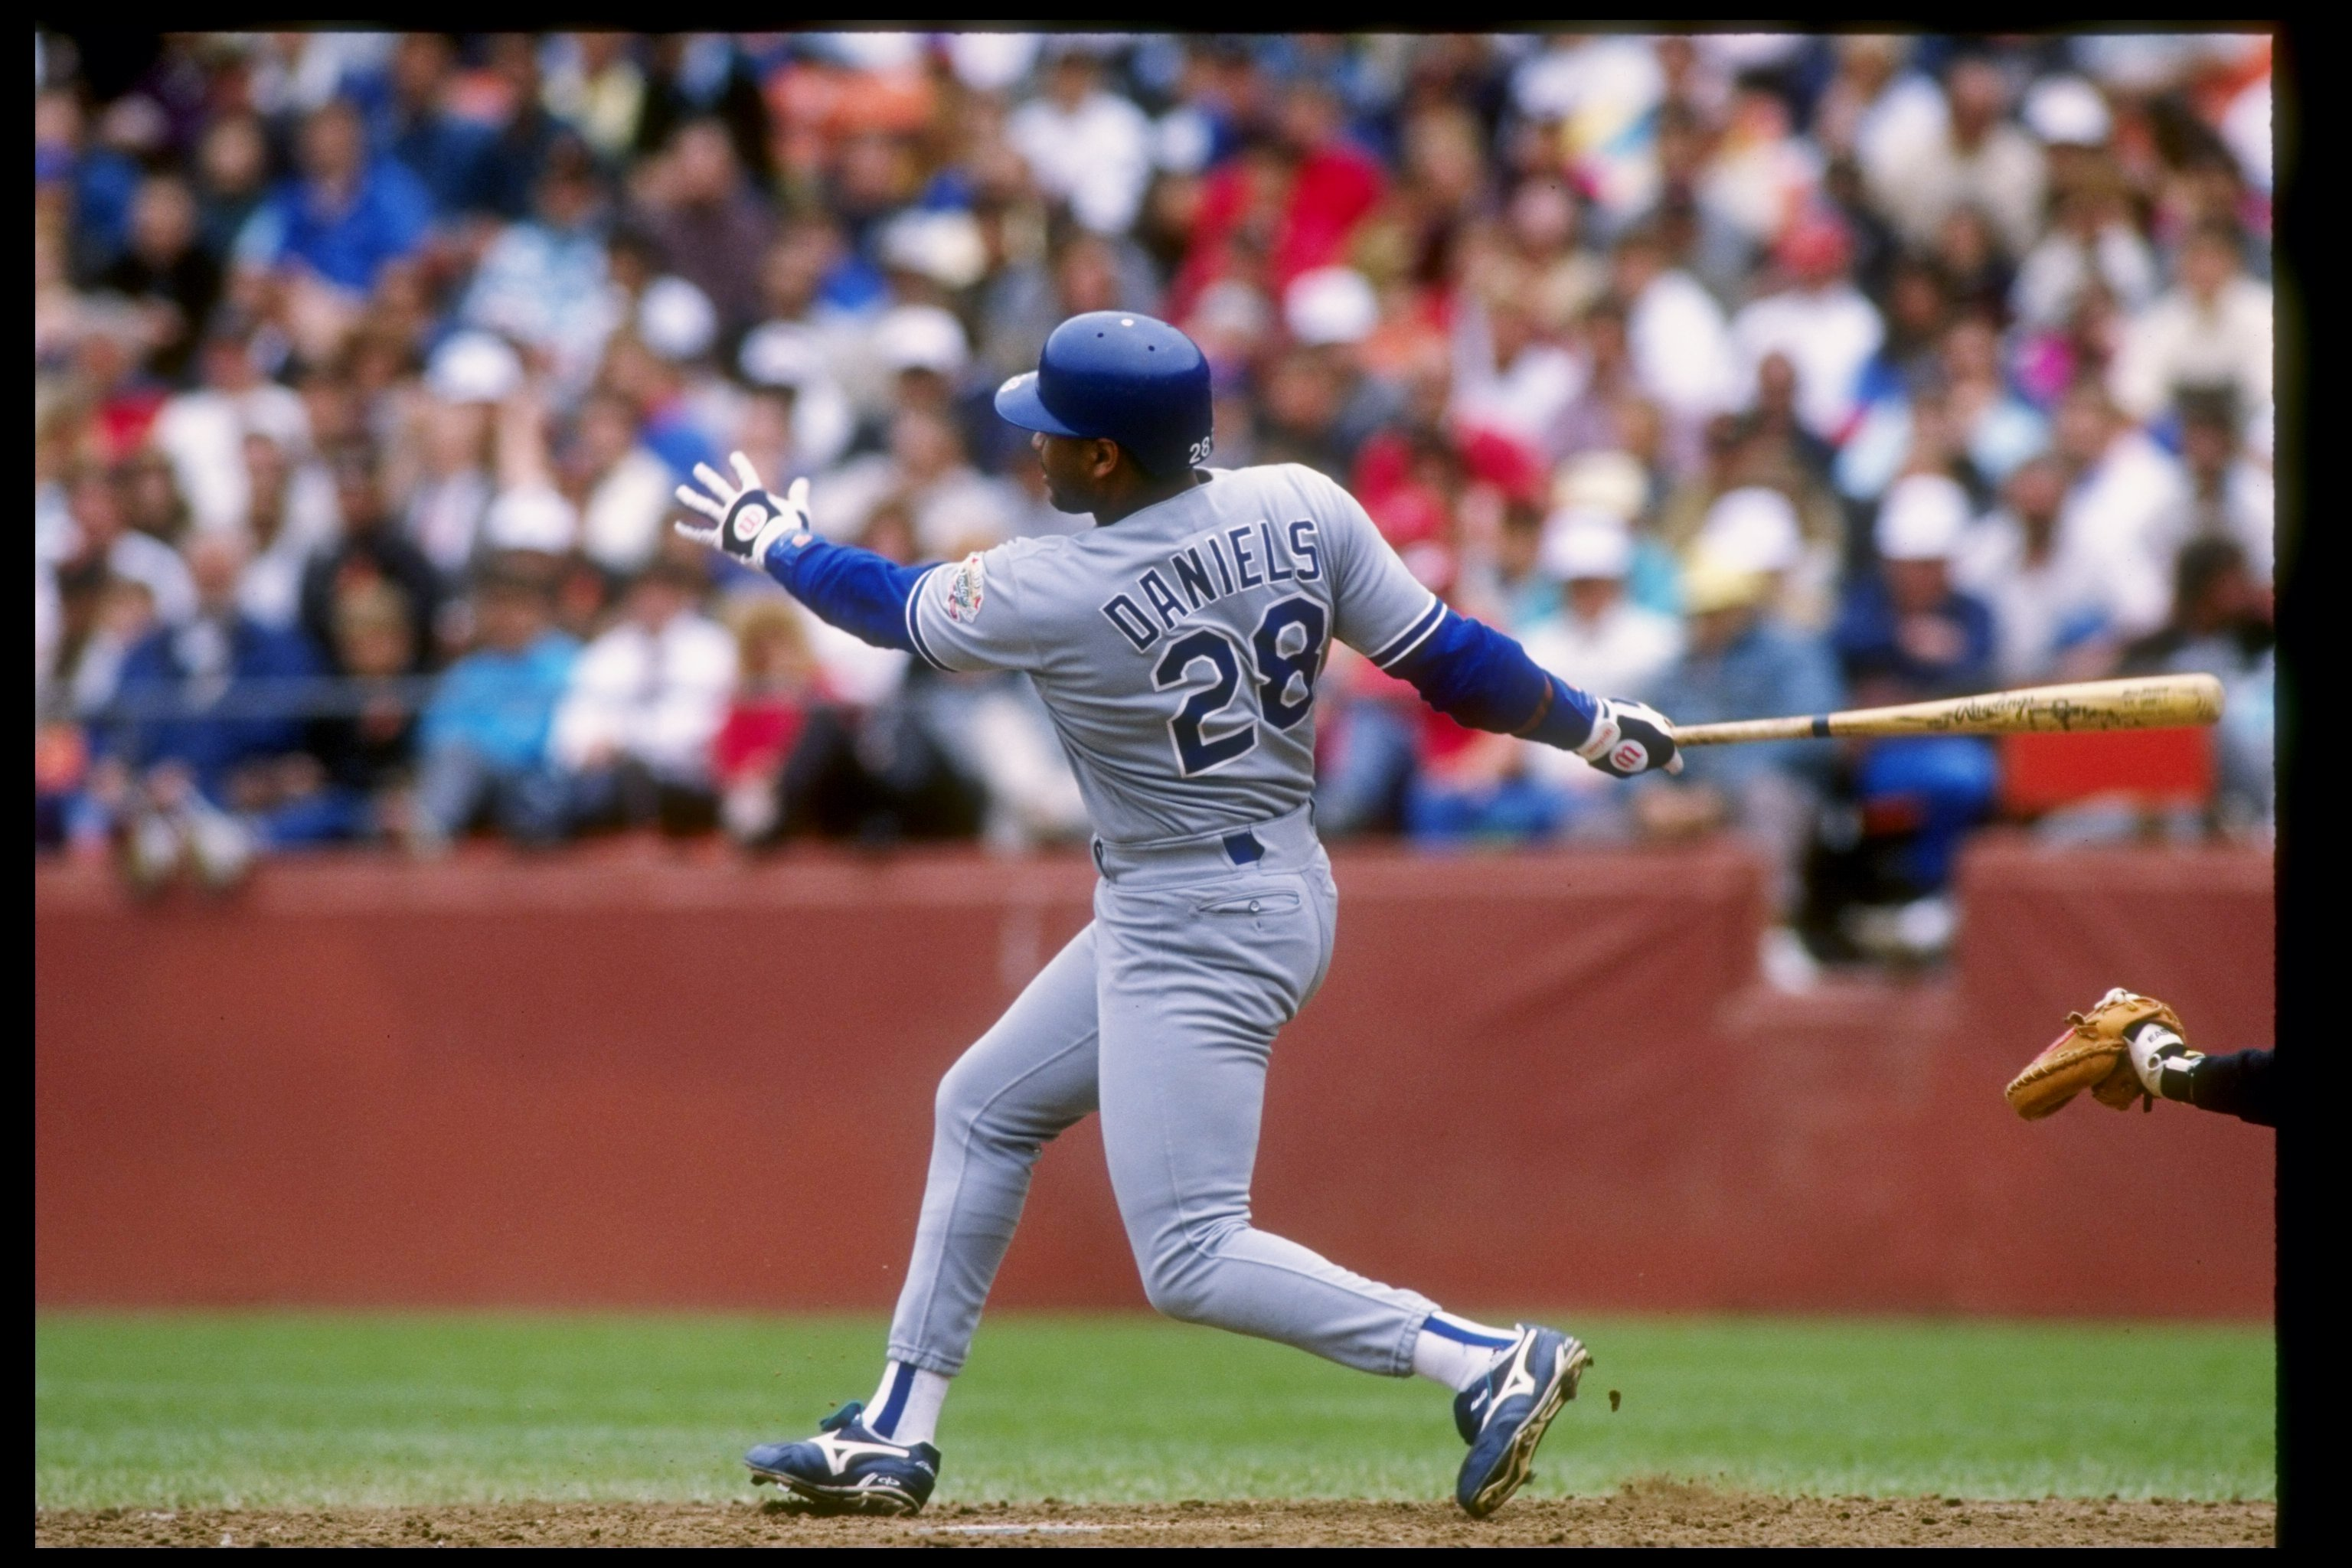 1990:  Outfielder Kal Daniels of the Los Angeles Dodgers hits the ball during a game. Mandatory Credit: Otto Greule  /Allsport